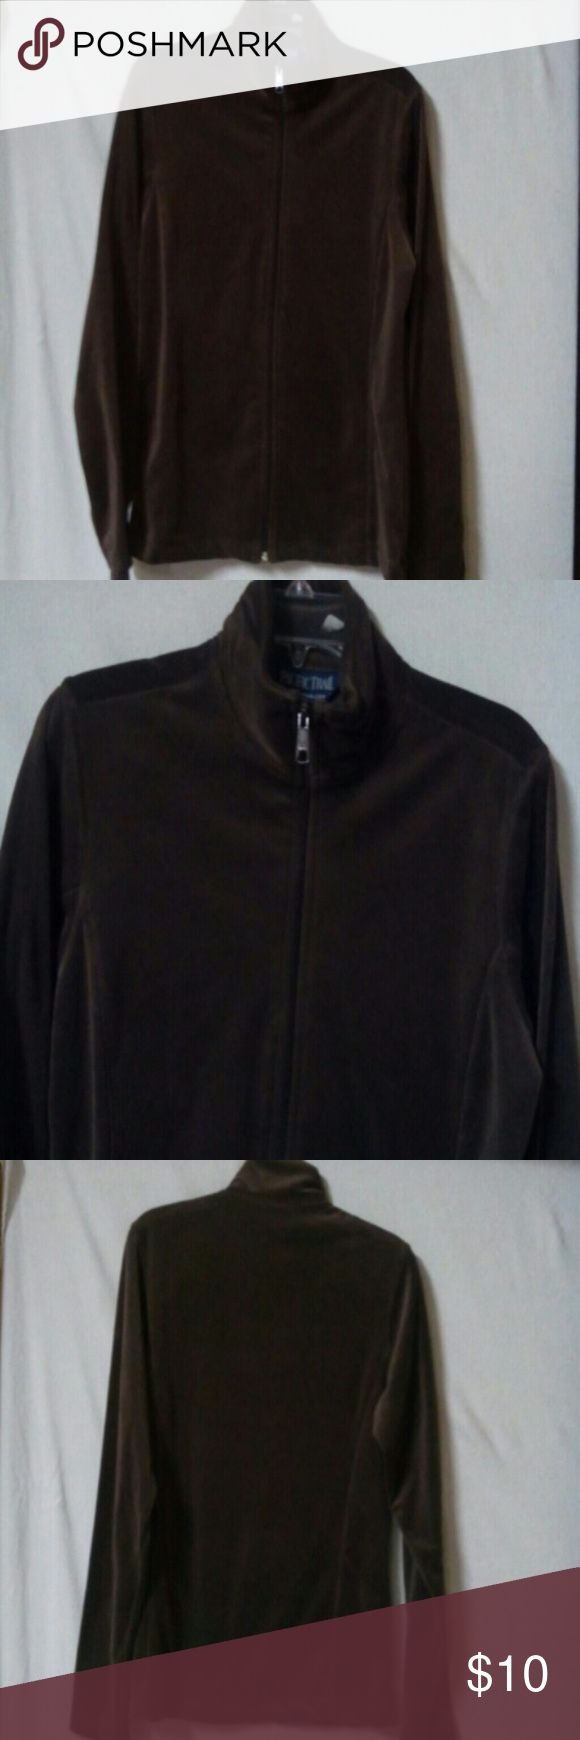 """Pacific trail women size small velour jacket Barely worn, brown, long sleeve, zipper front, polyester, chest 40"""", length 25"""" Pacific Trail Jackets & Coats"""